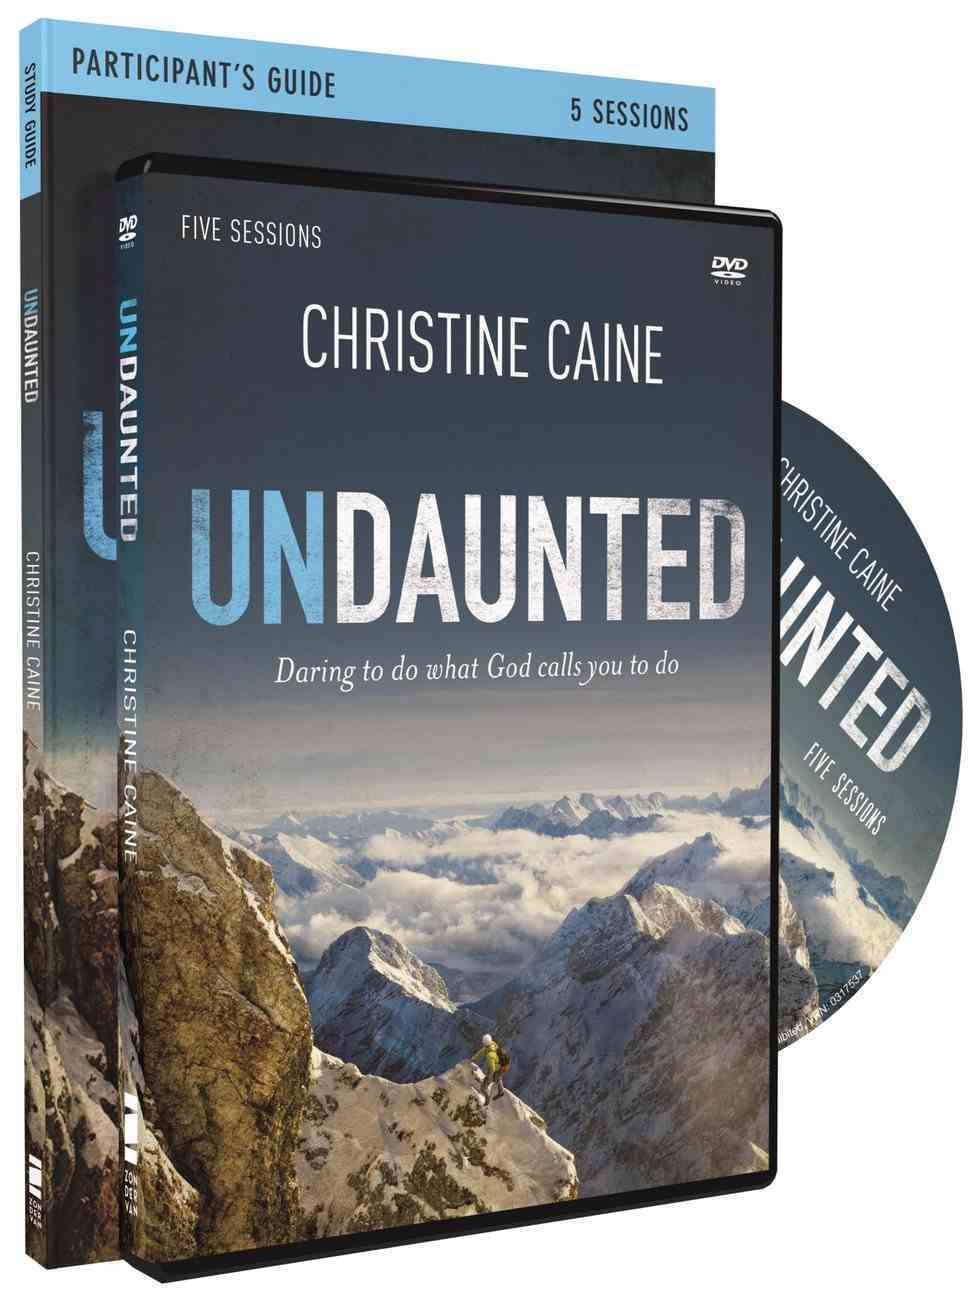 Undaunted (Dvd & Participant's Guide) Pack